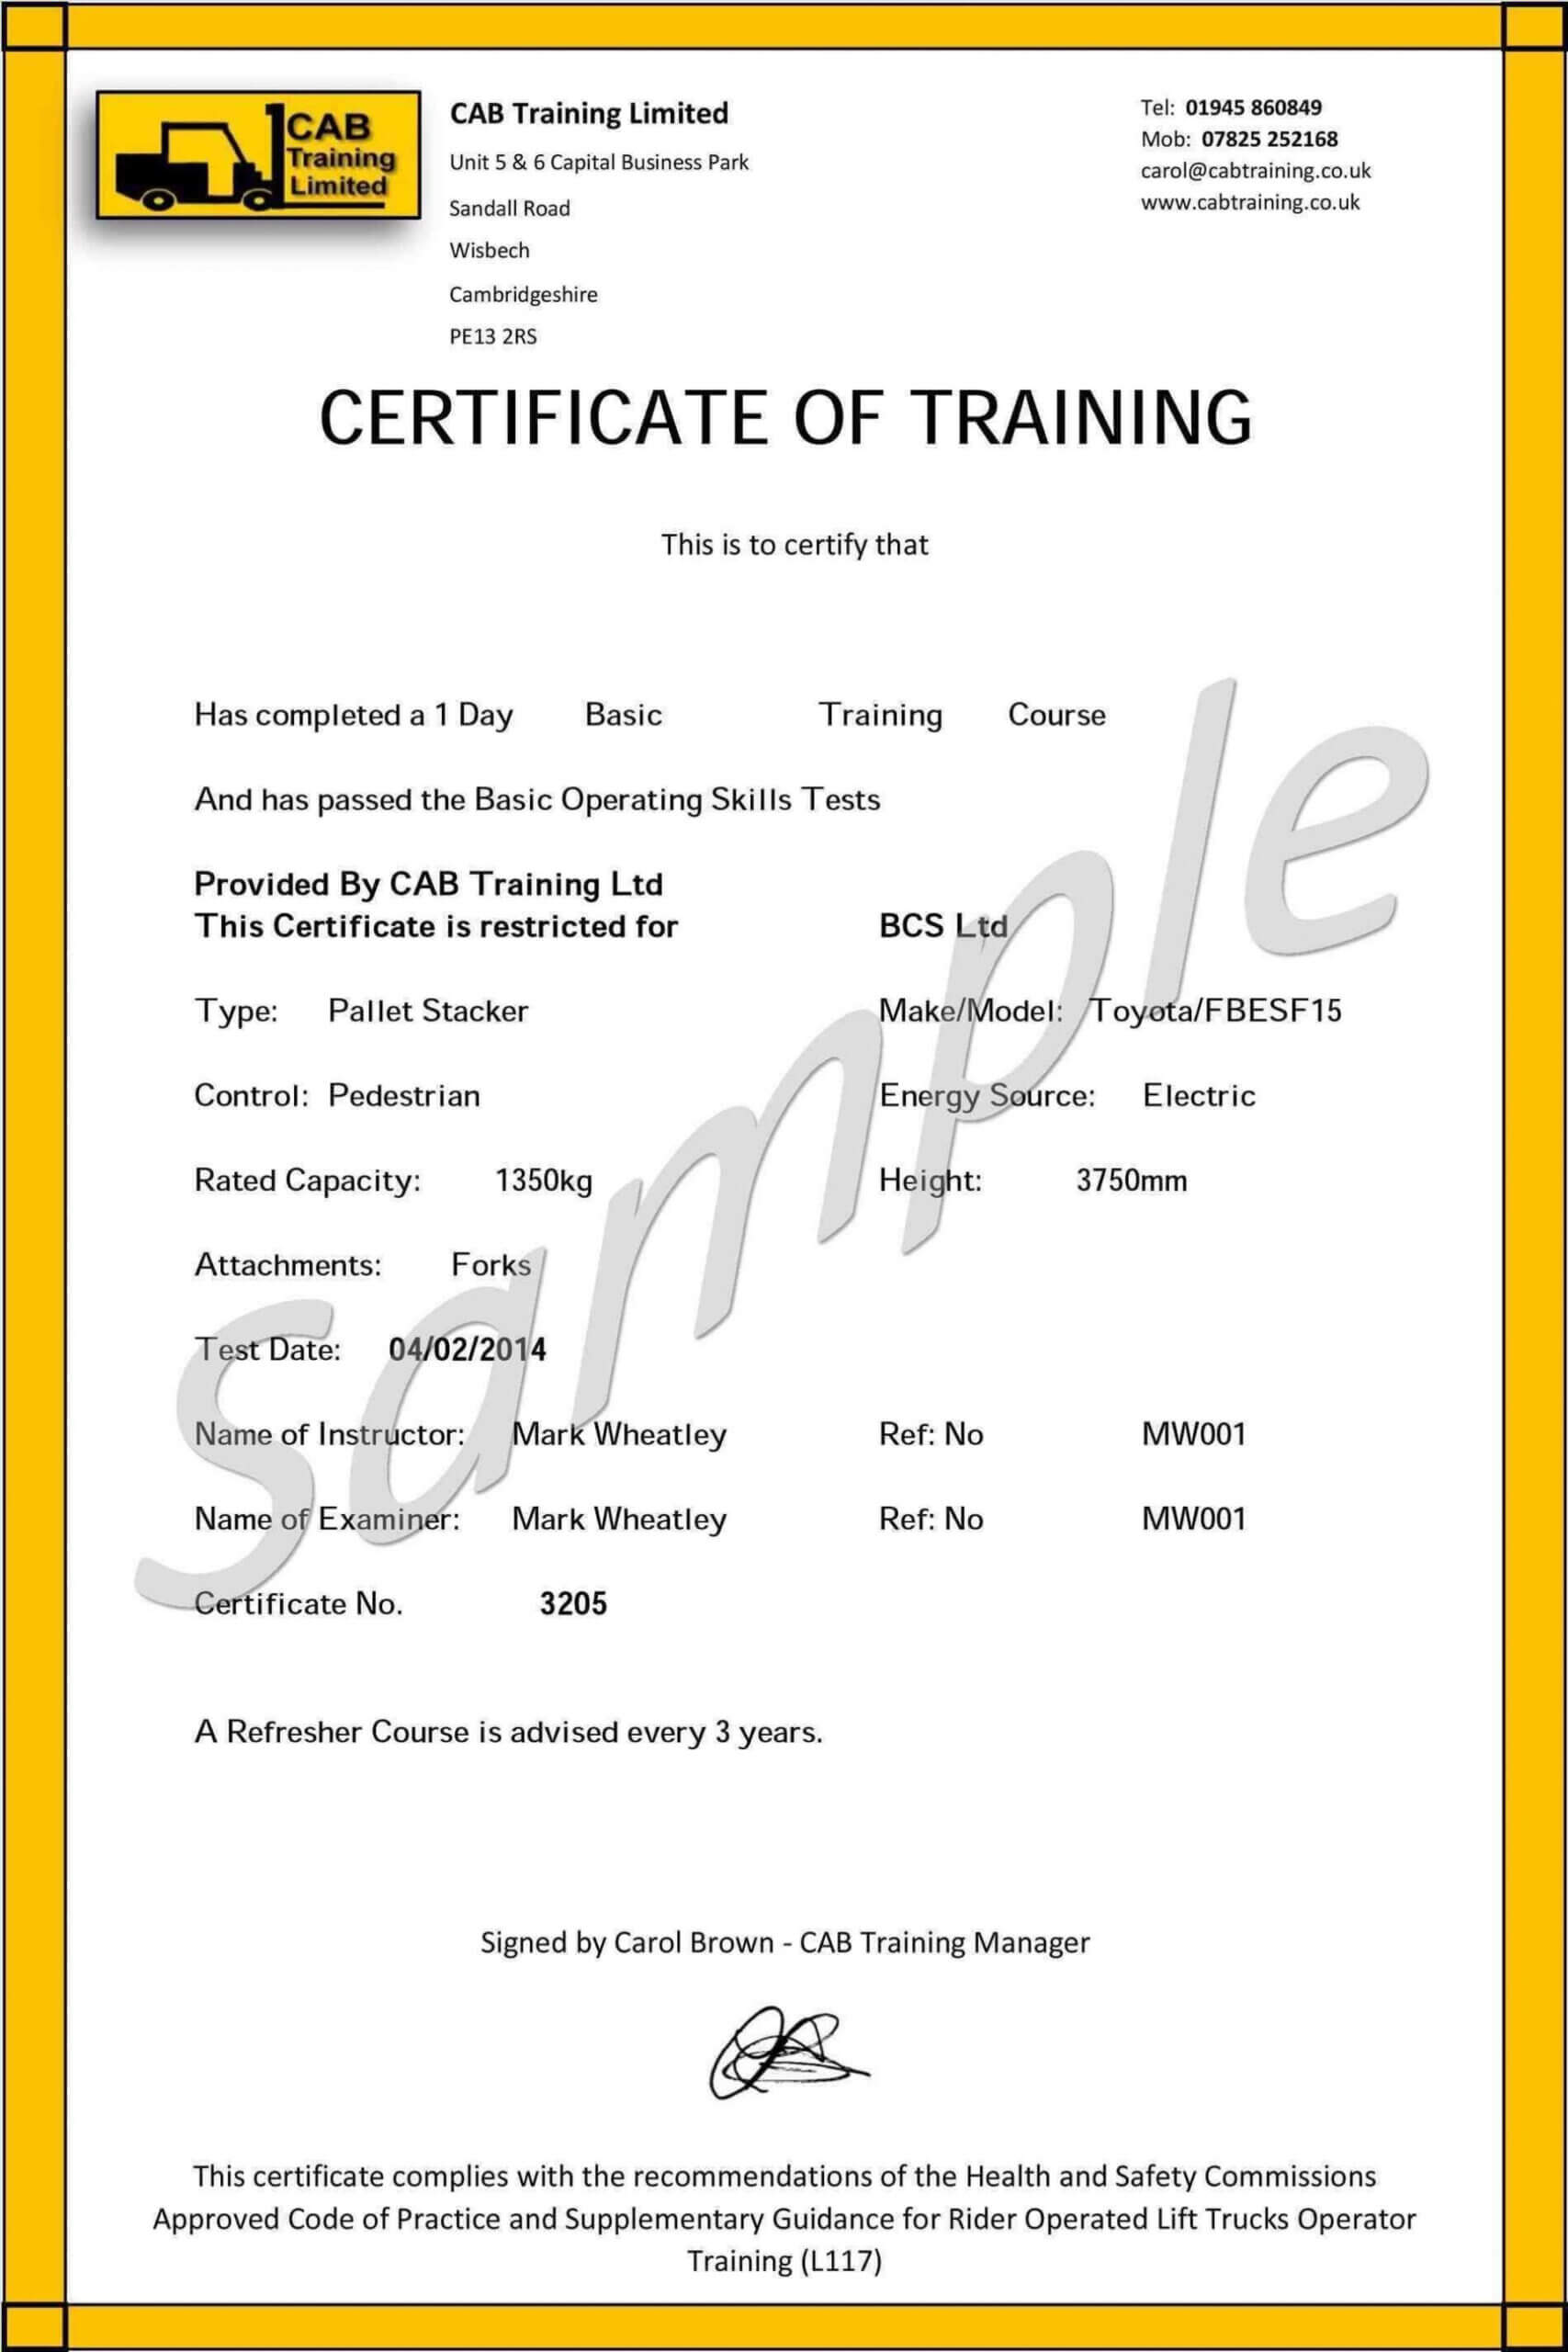 009 Forklift Certification Card Template Free Original For Forklift Certification Card Template